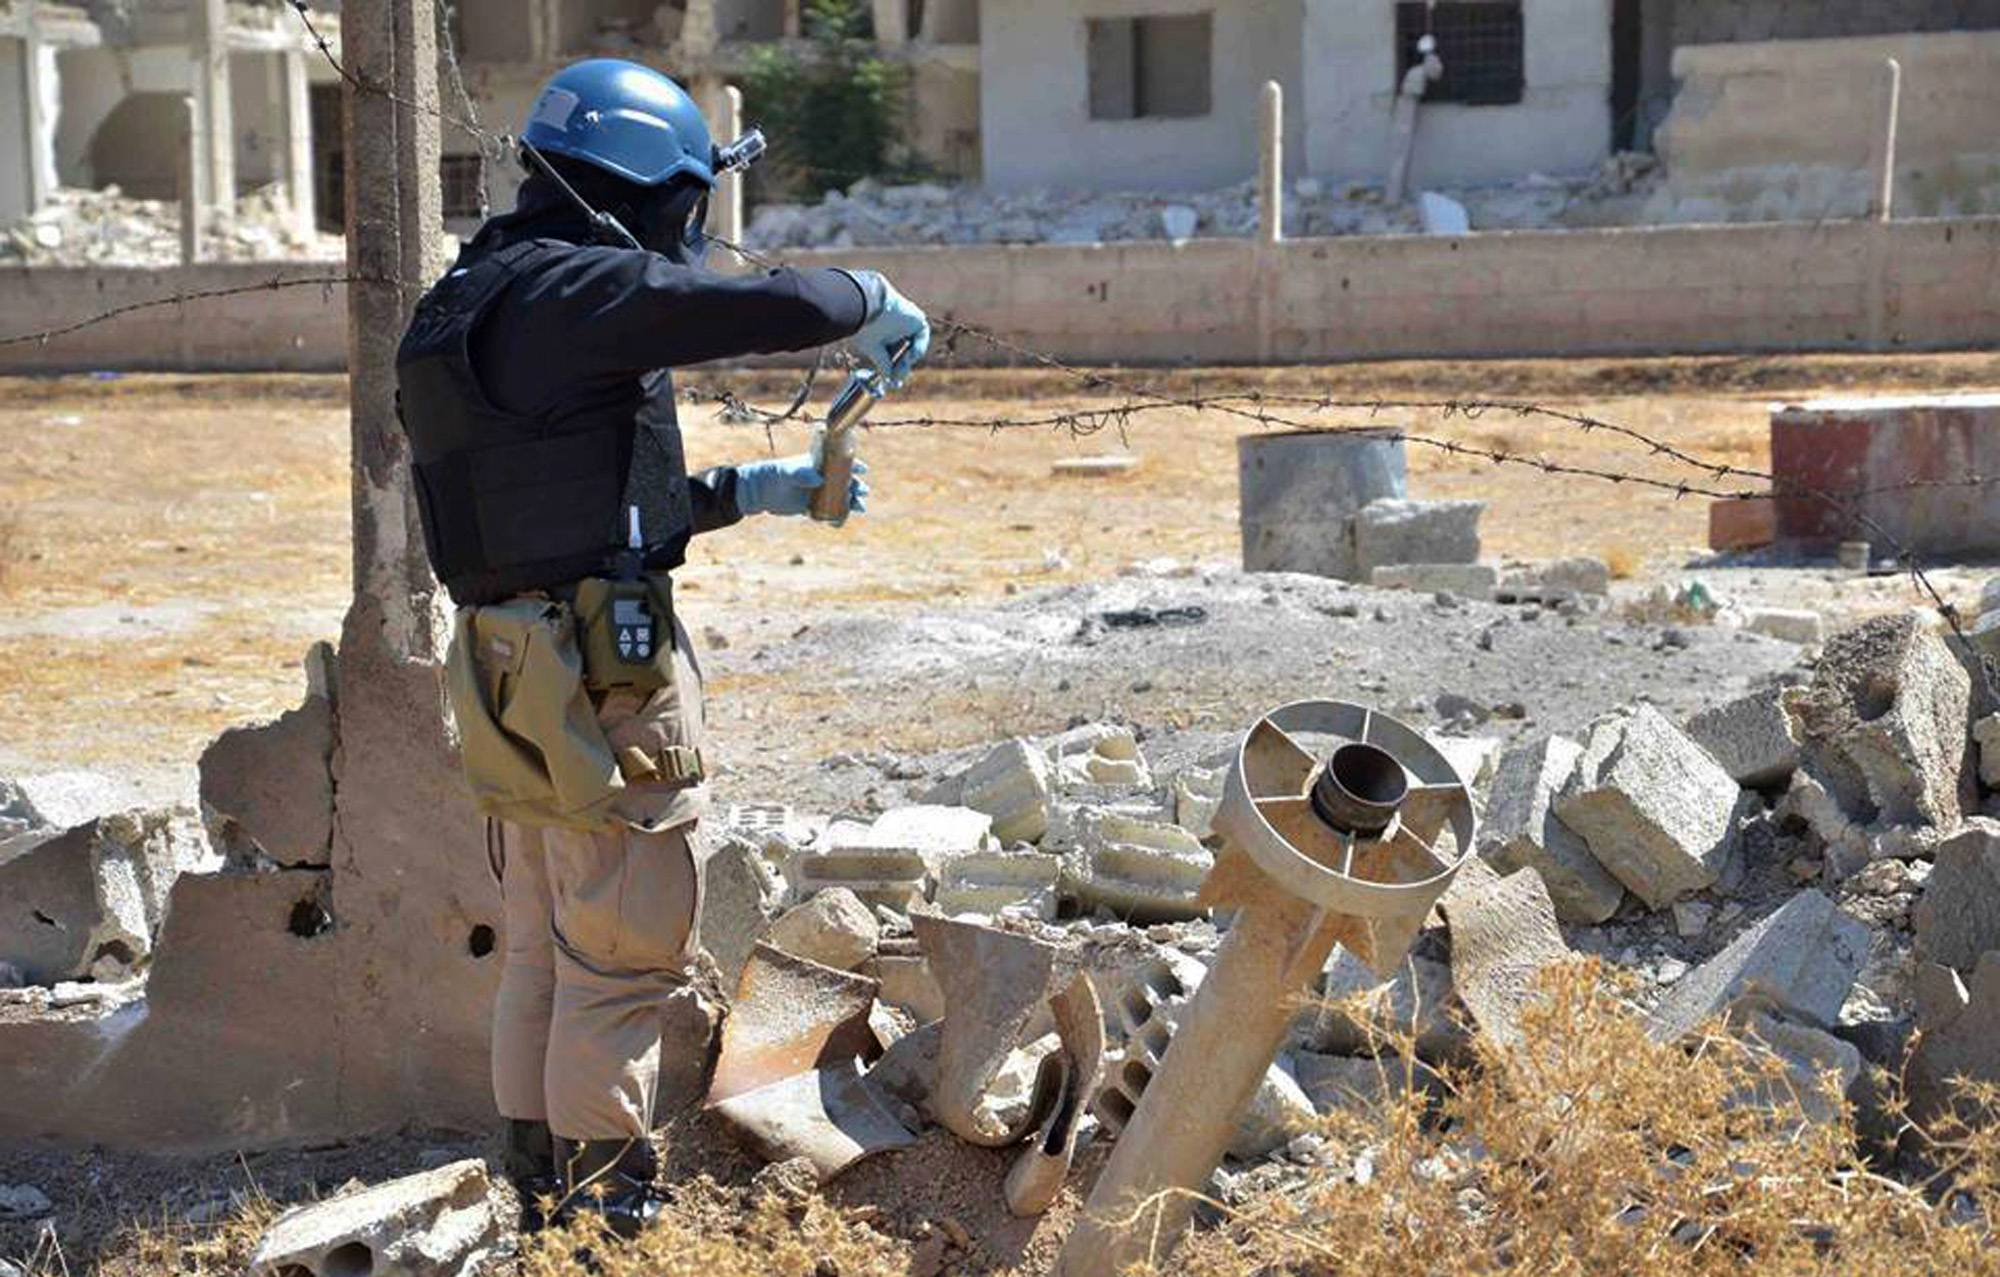 Associated Press/Wednesday, Aug. 28, 2013A member of a U.N. investigation team takes samples of sands Saturday near a part of a missile strike that is likely to be one of the chemical rockets, according to activists, in Ain Terma, Syria.